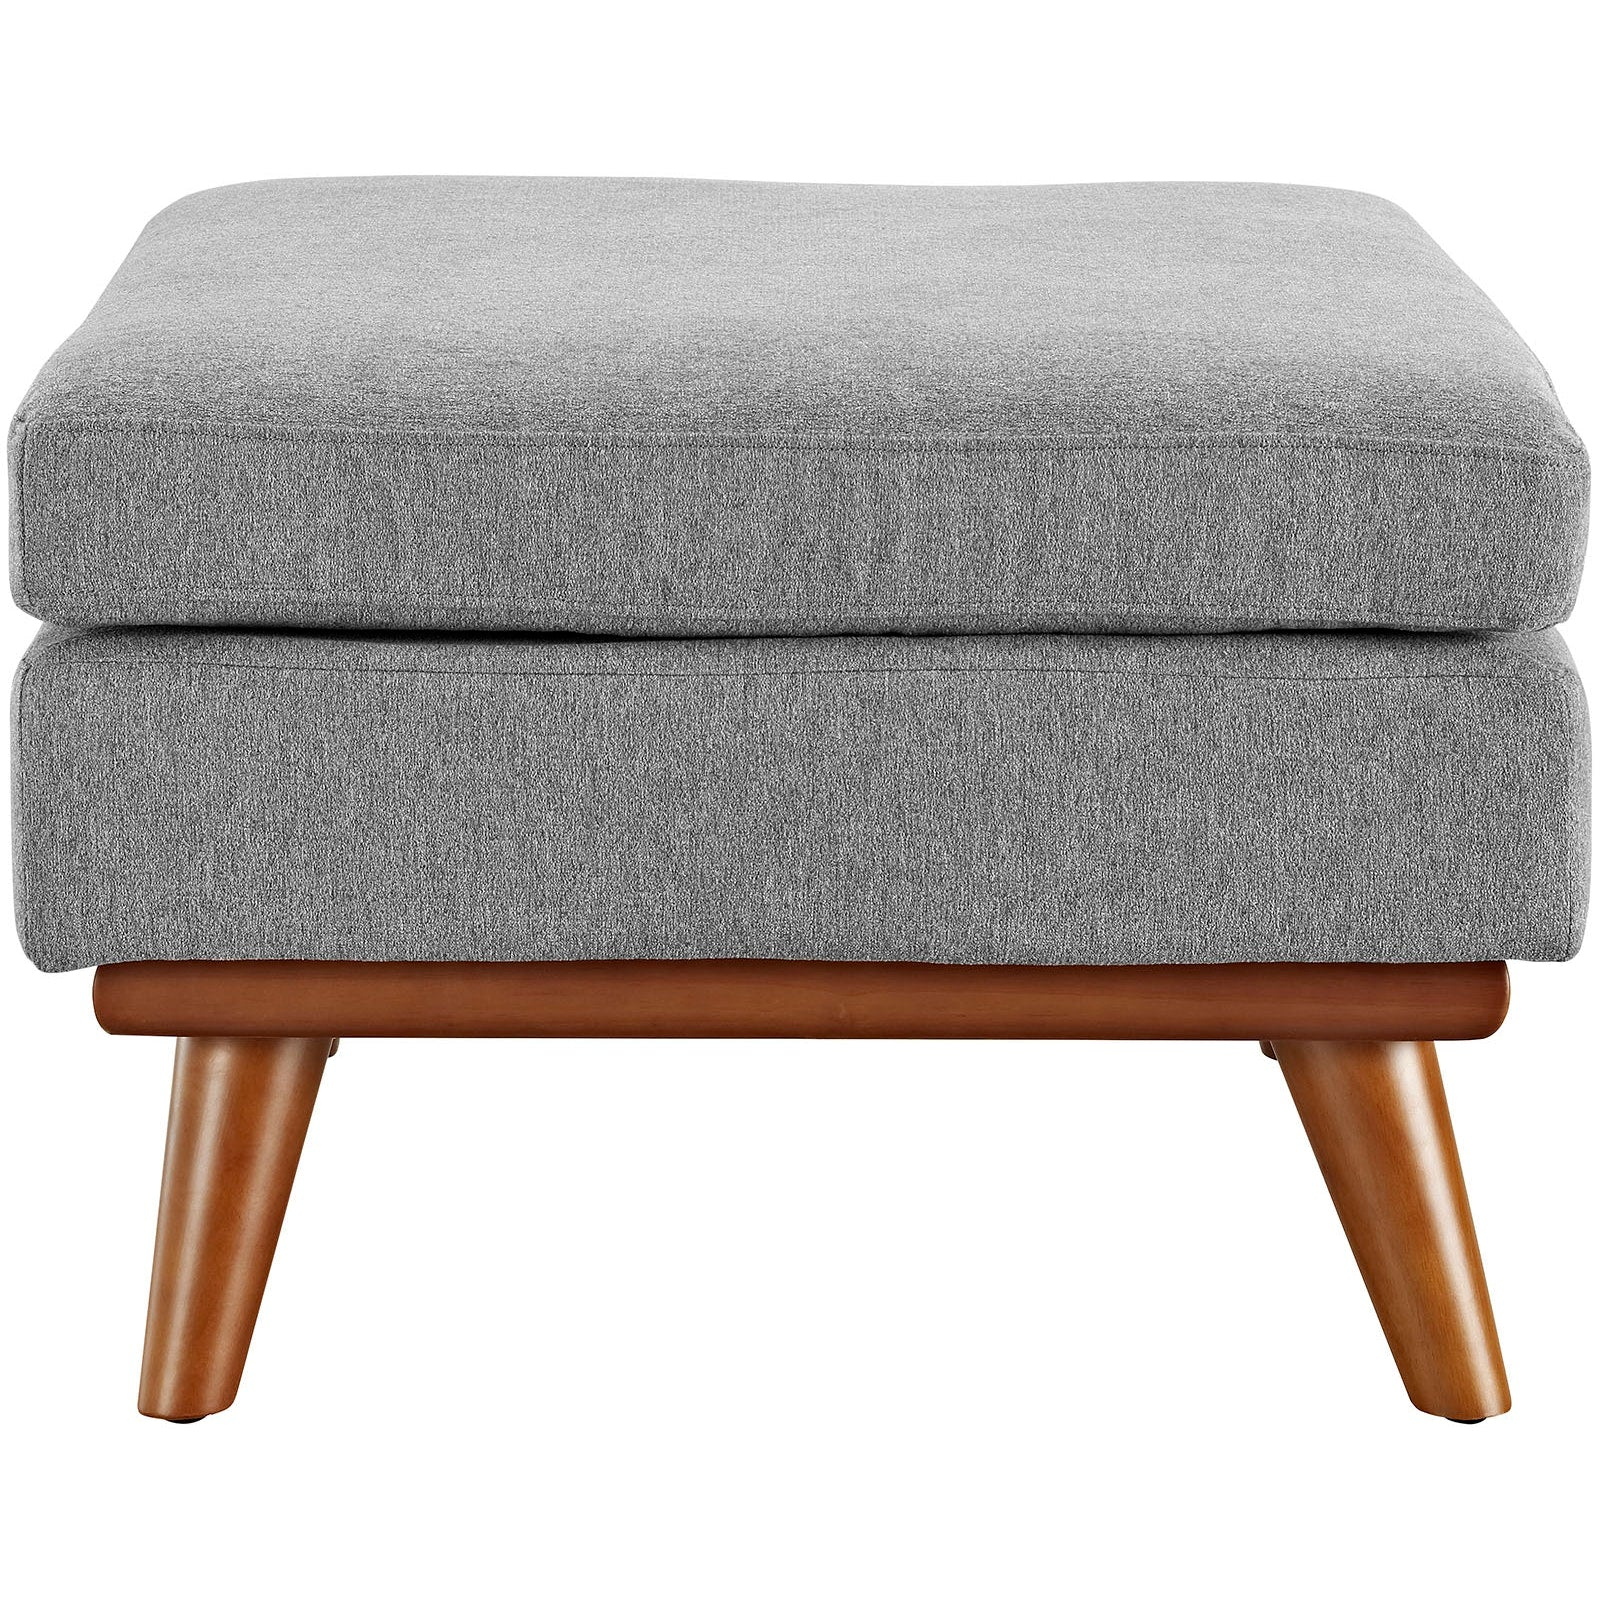 Engage Upholstered Fabric Ottoman - Expectation Gray